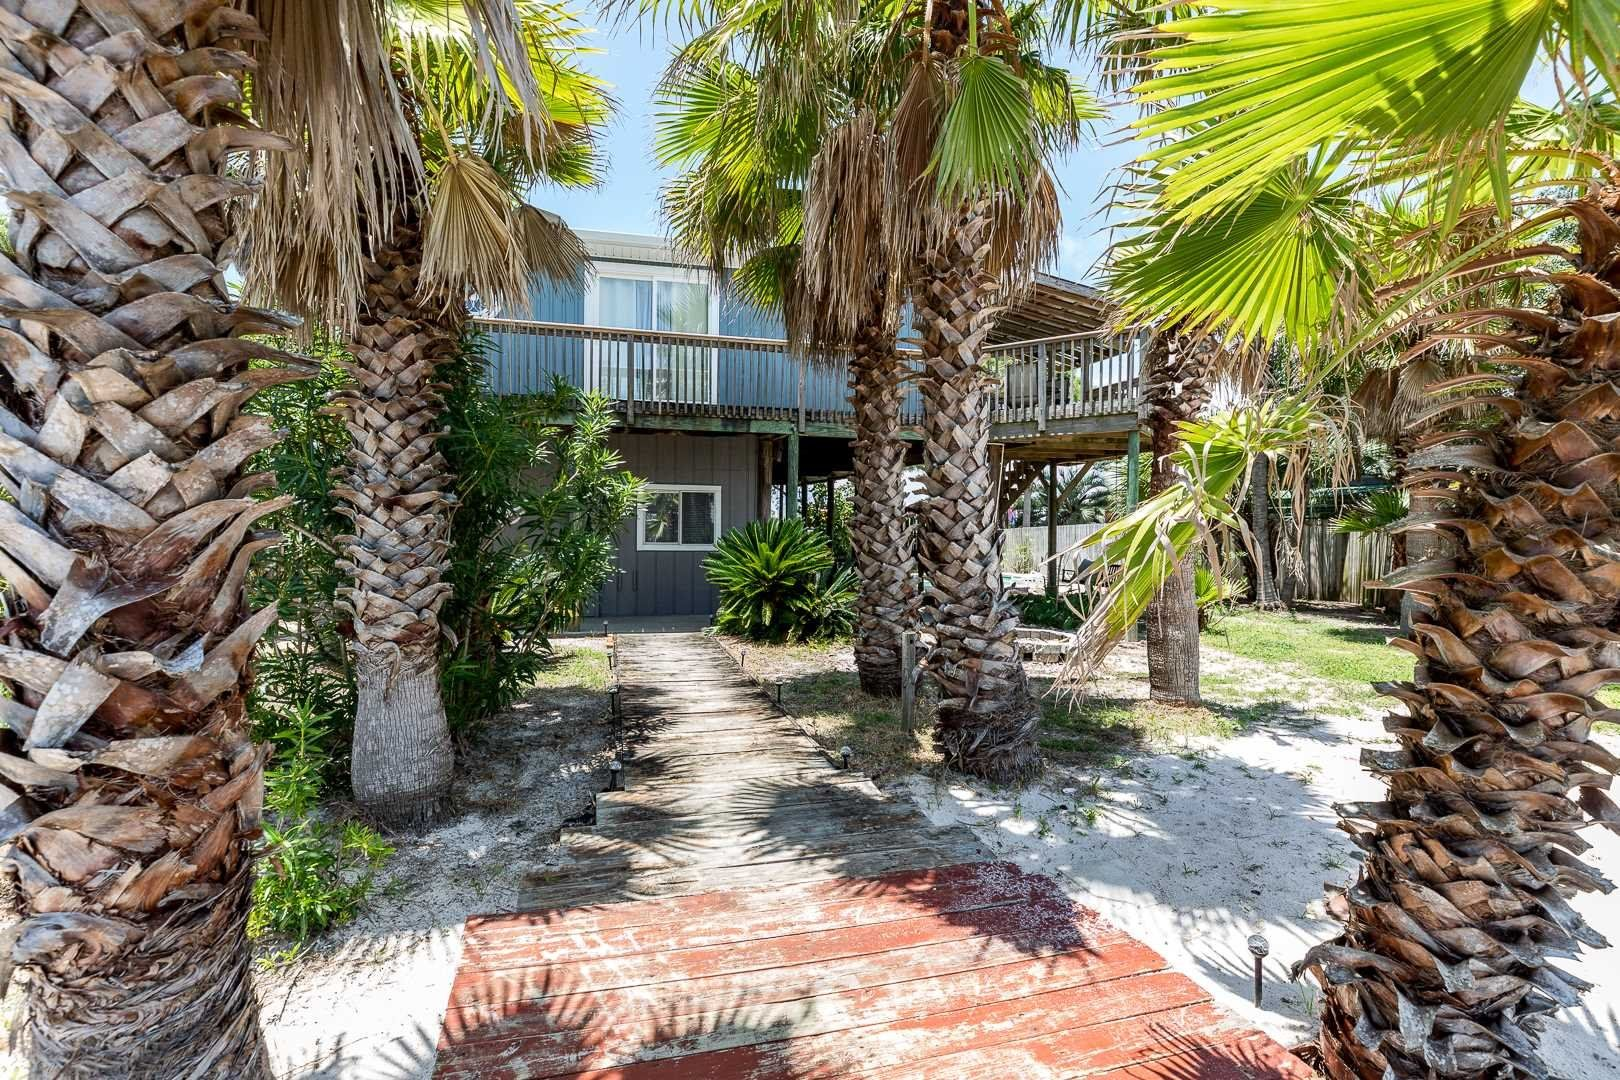 Bay club ft vacation home rentals vacation home